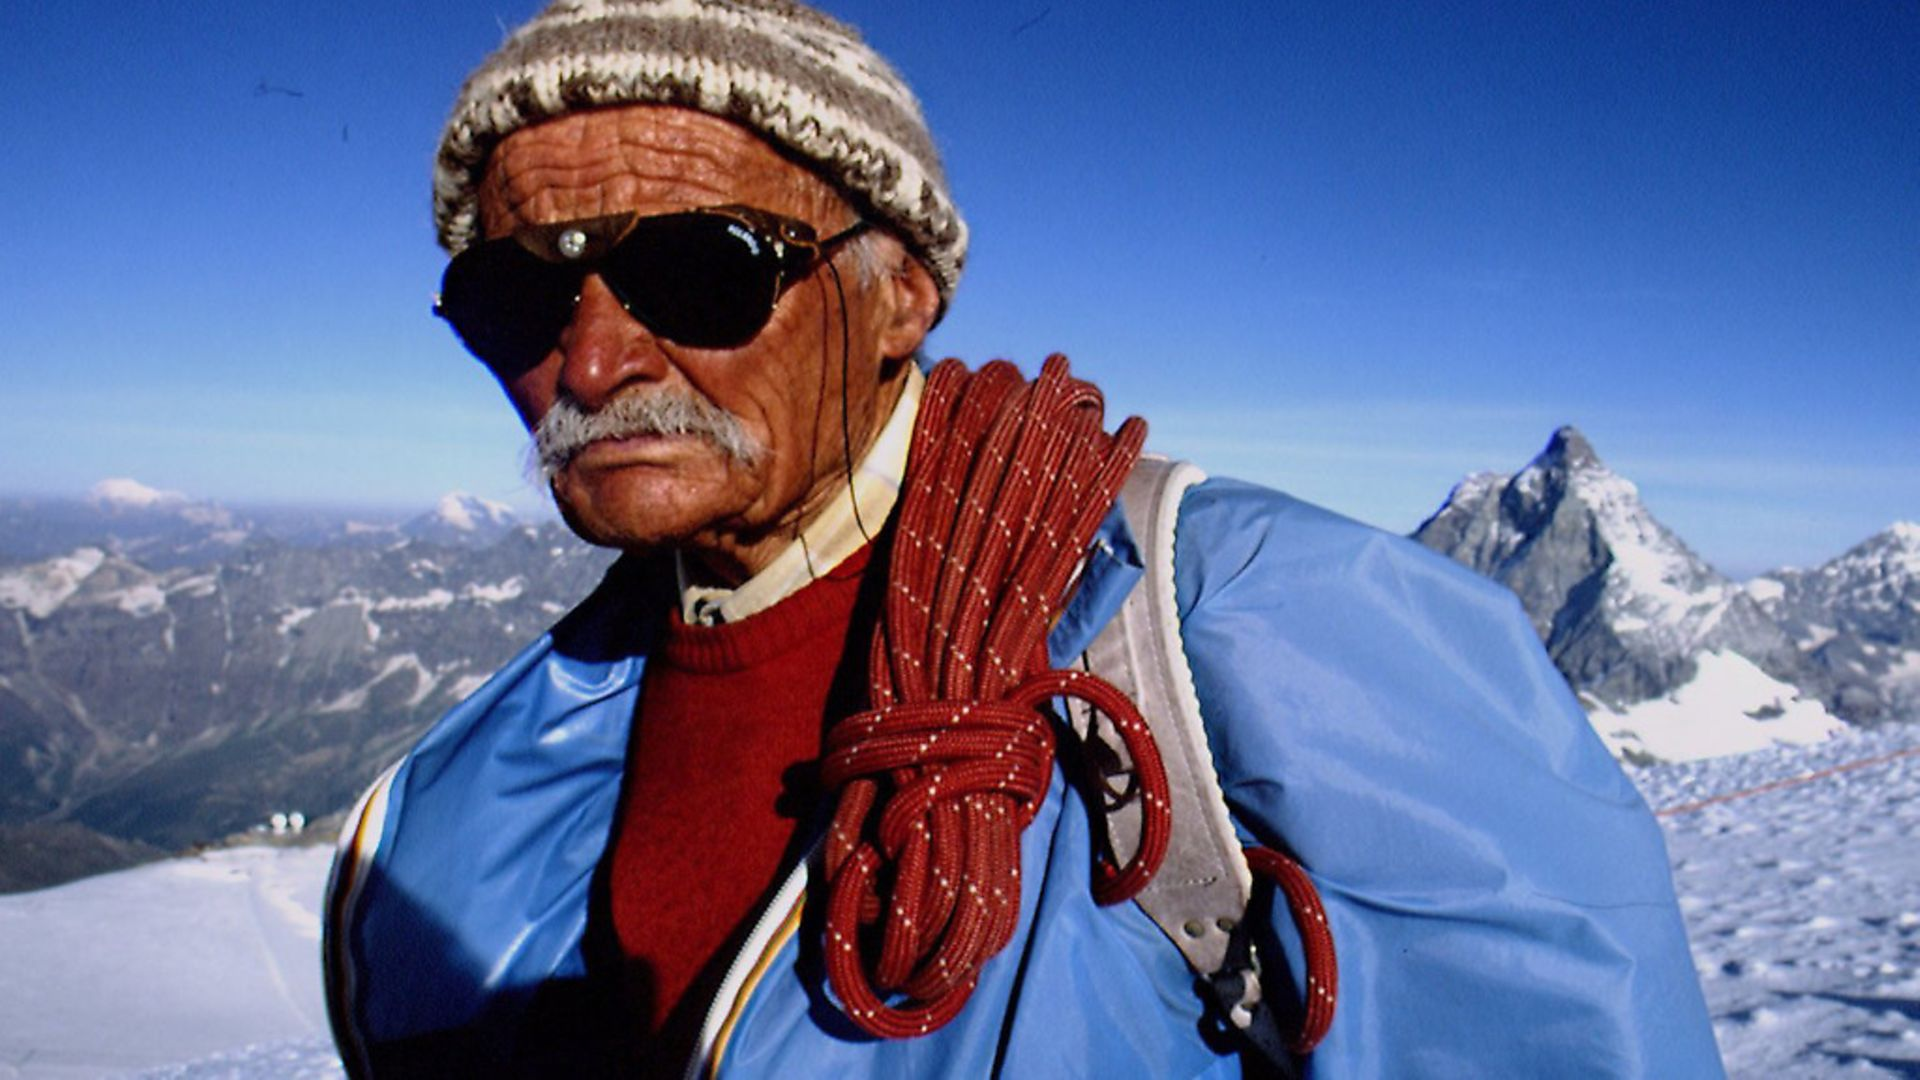 Ulrich Inderbinen, who was the oldest mountain guide in the world. Picture: John van Hasselt/Sygma via Getty Images - Credit: Sygma via Getty Images